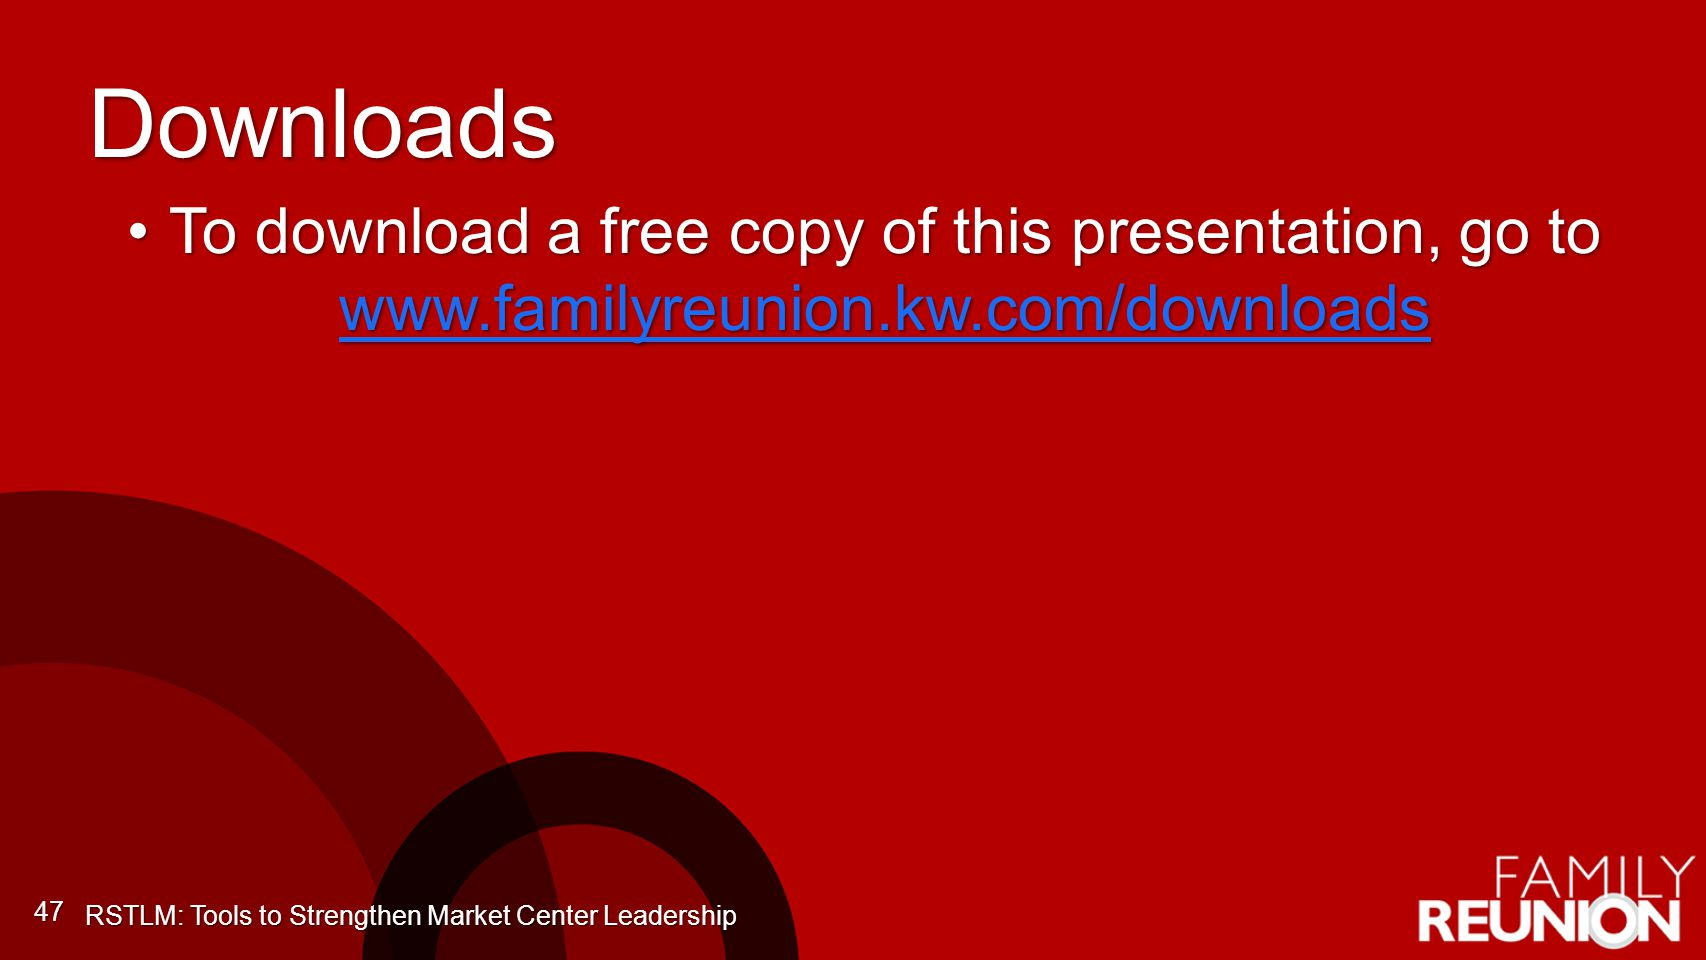 Downloads To download a free copy of this presentation, go to www.familyreunion.kw.com/downloads.